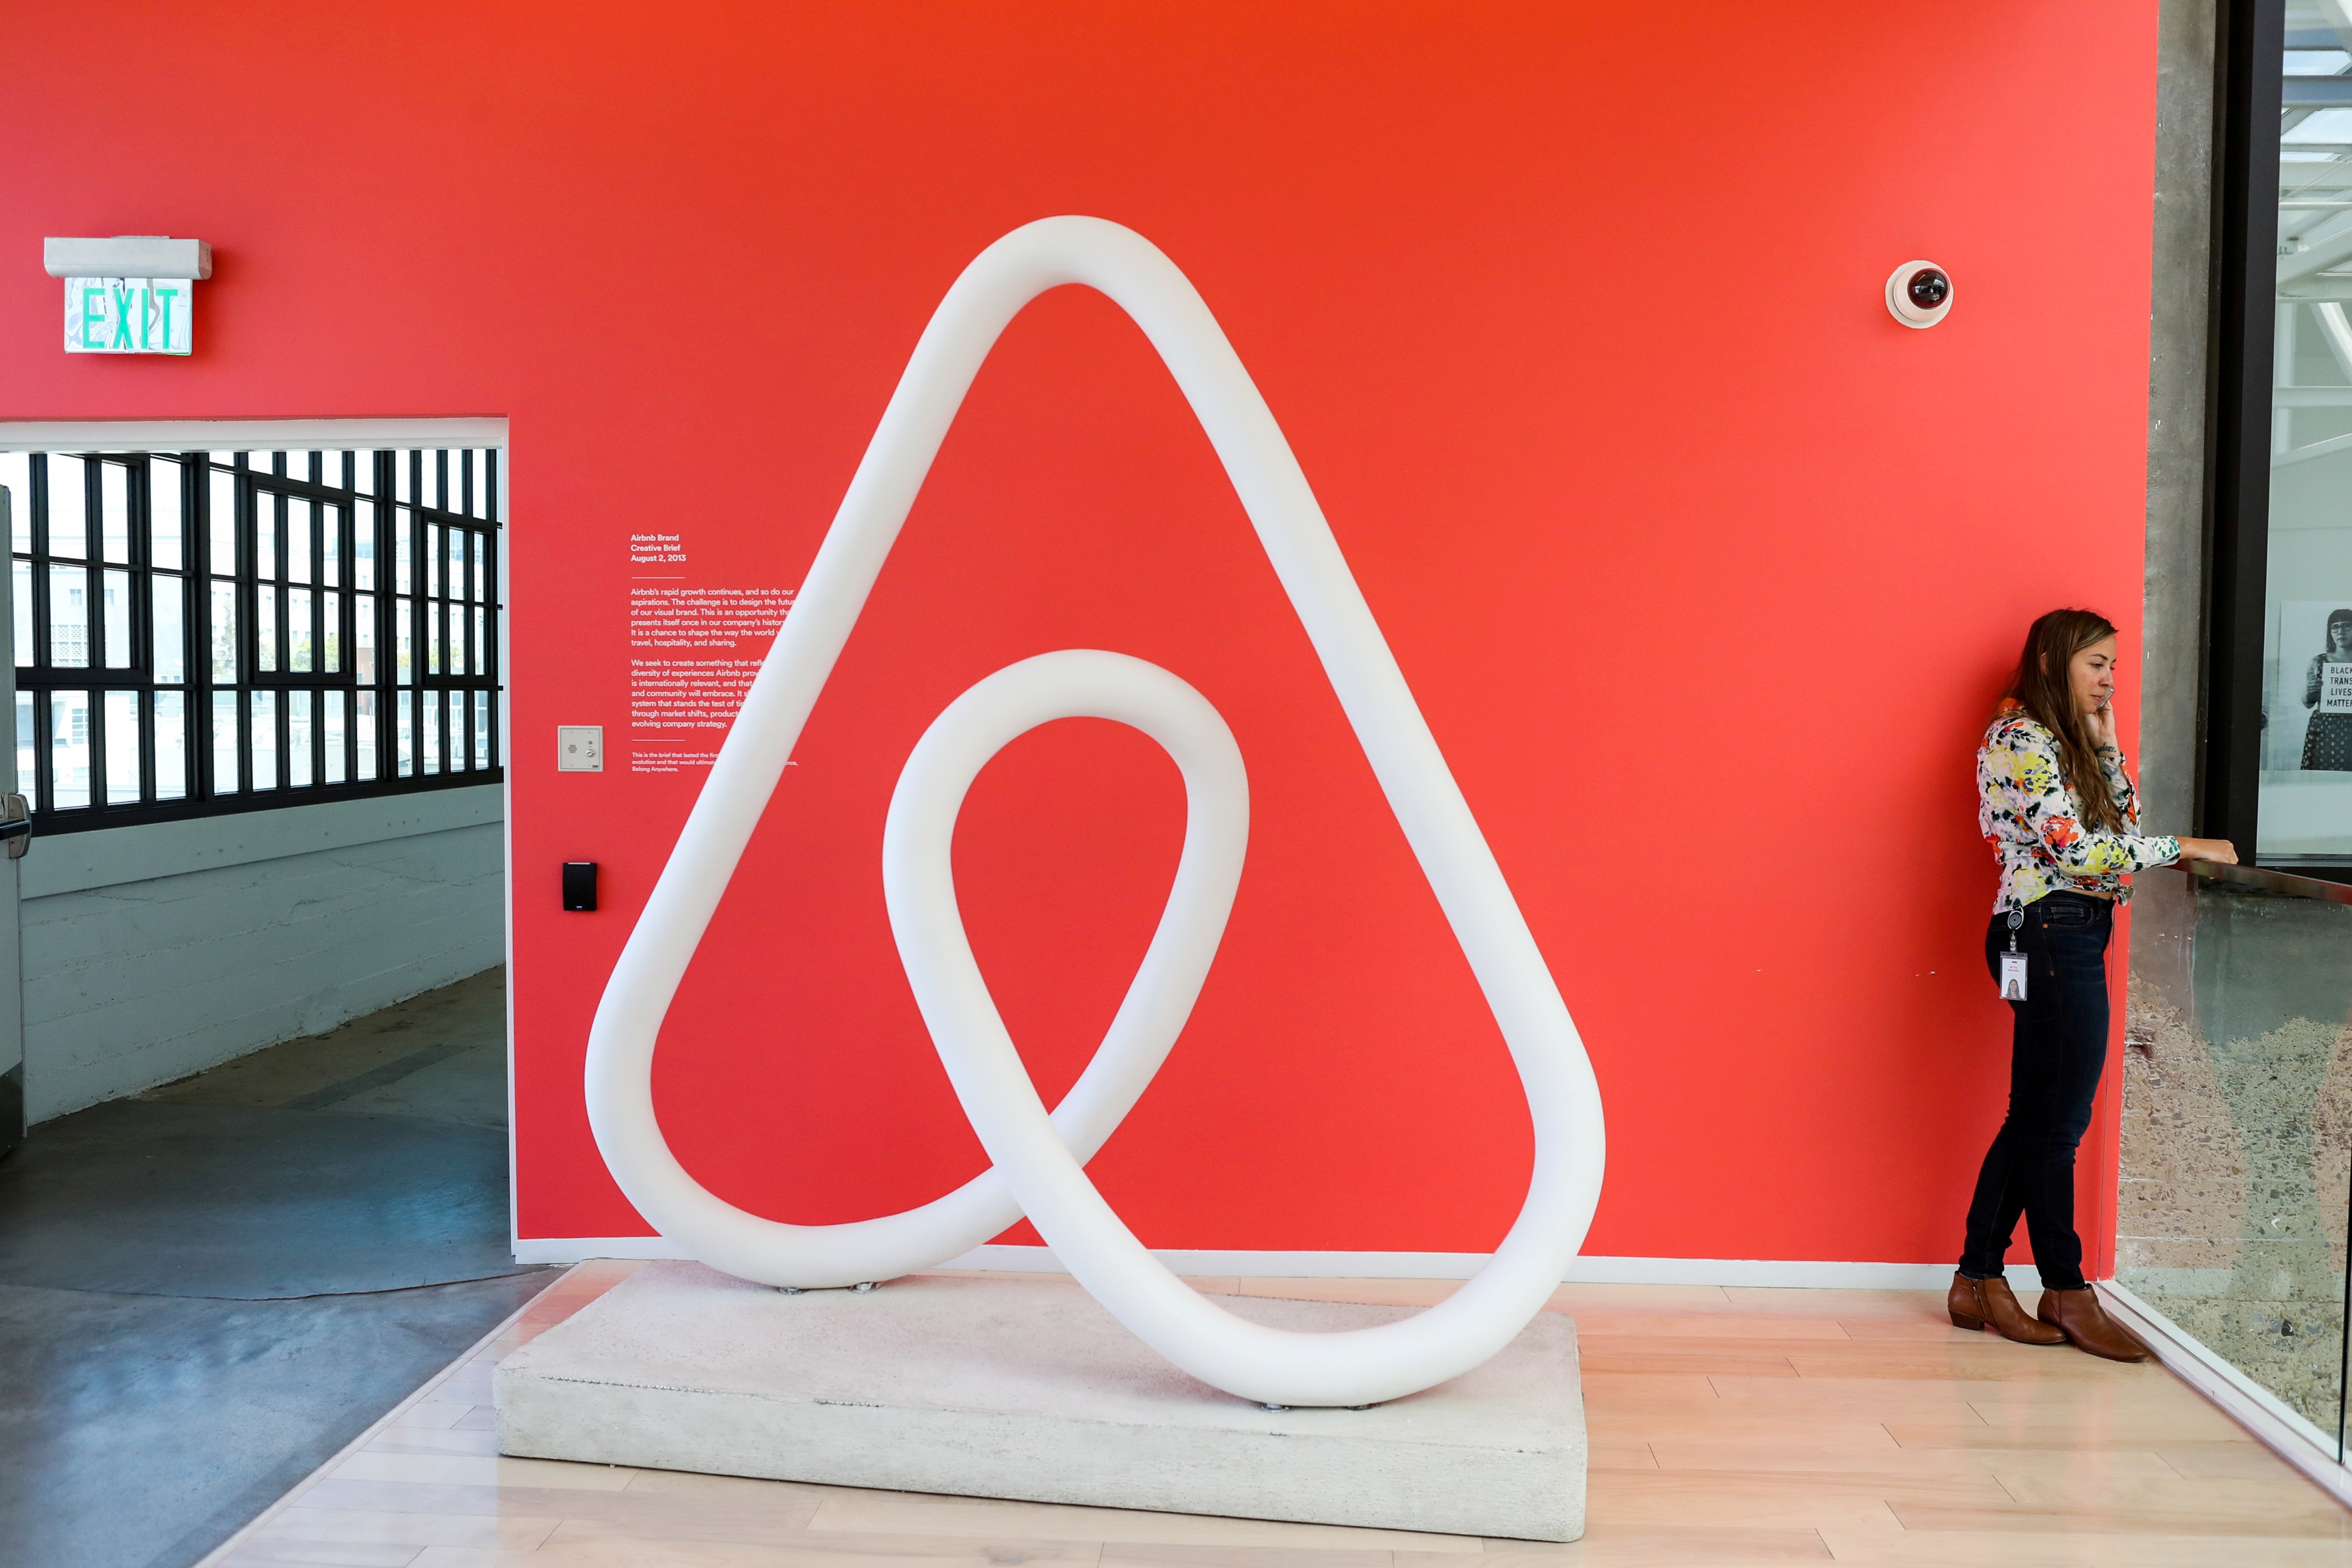 Airbnb was founded by Brian Chesky, Joe Gebbia and Nathan Blecharczyk in 2008 during the financial crisis as a cheaper alternative to hotels.